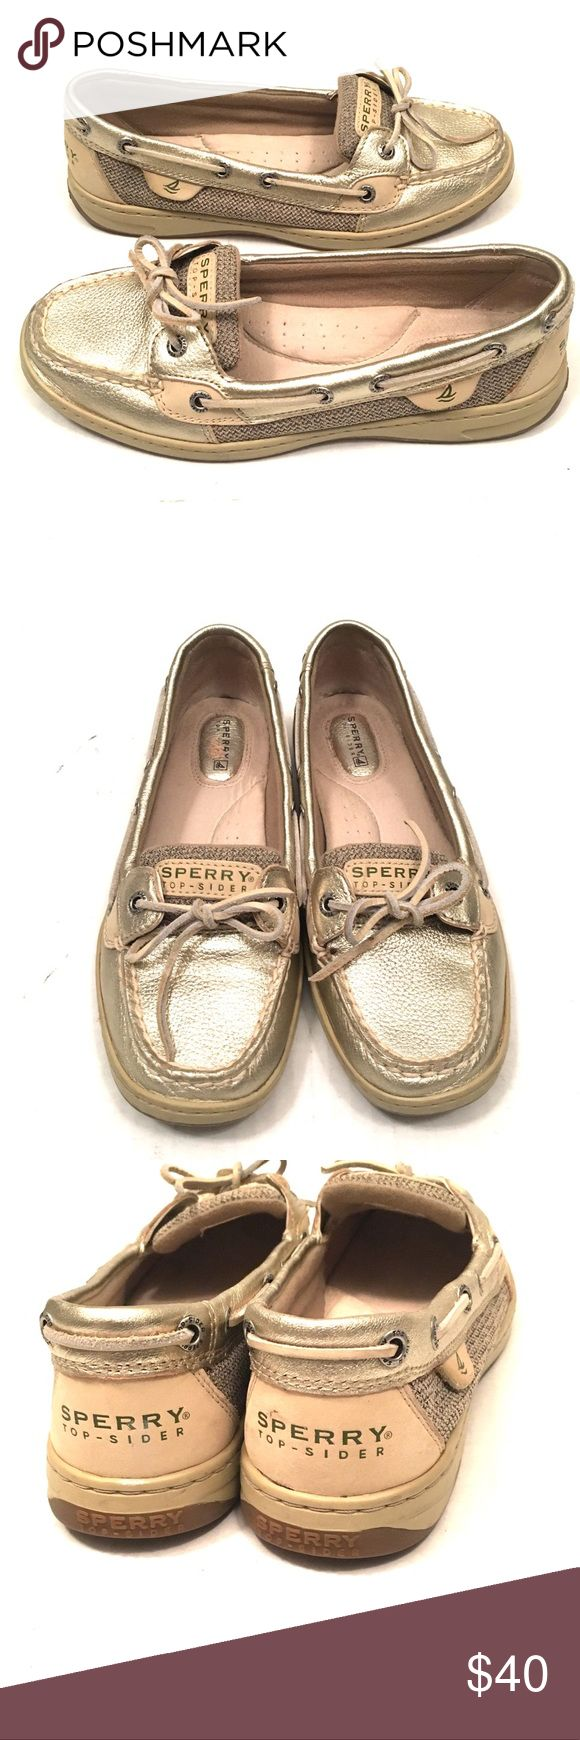 Sperry Top Sider Angelfish Gold Boat Shoes Sperry Top Sider Angelfish  Gold and Tan  Metallic Boat Shoes Great pre Owned Shape  Size 7.5 Medium Buy with Confidence Sperry Top-Sider Shoes Flats & Loafers